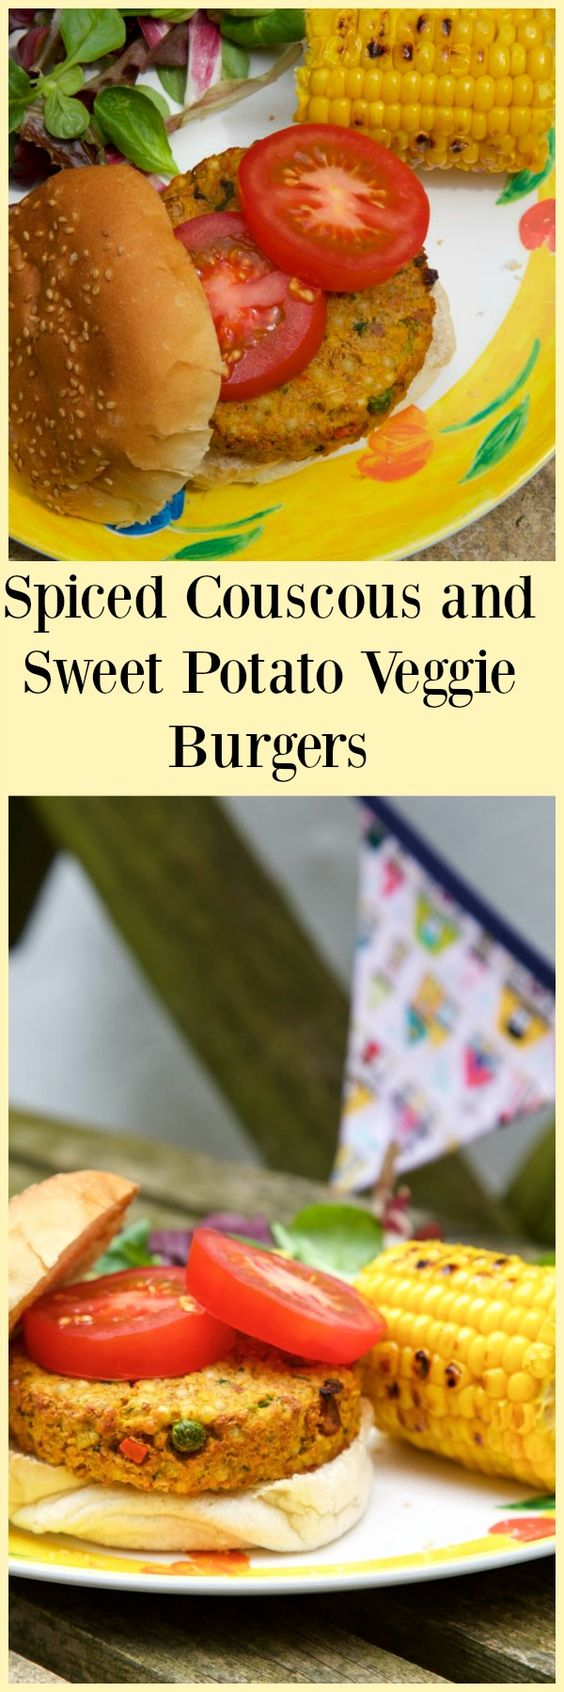 Spiced Couscous and Sweet Potato Veggie Burgers - easy to make using frozen foods from Iceland #poweroffrozen